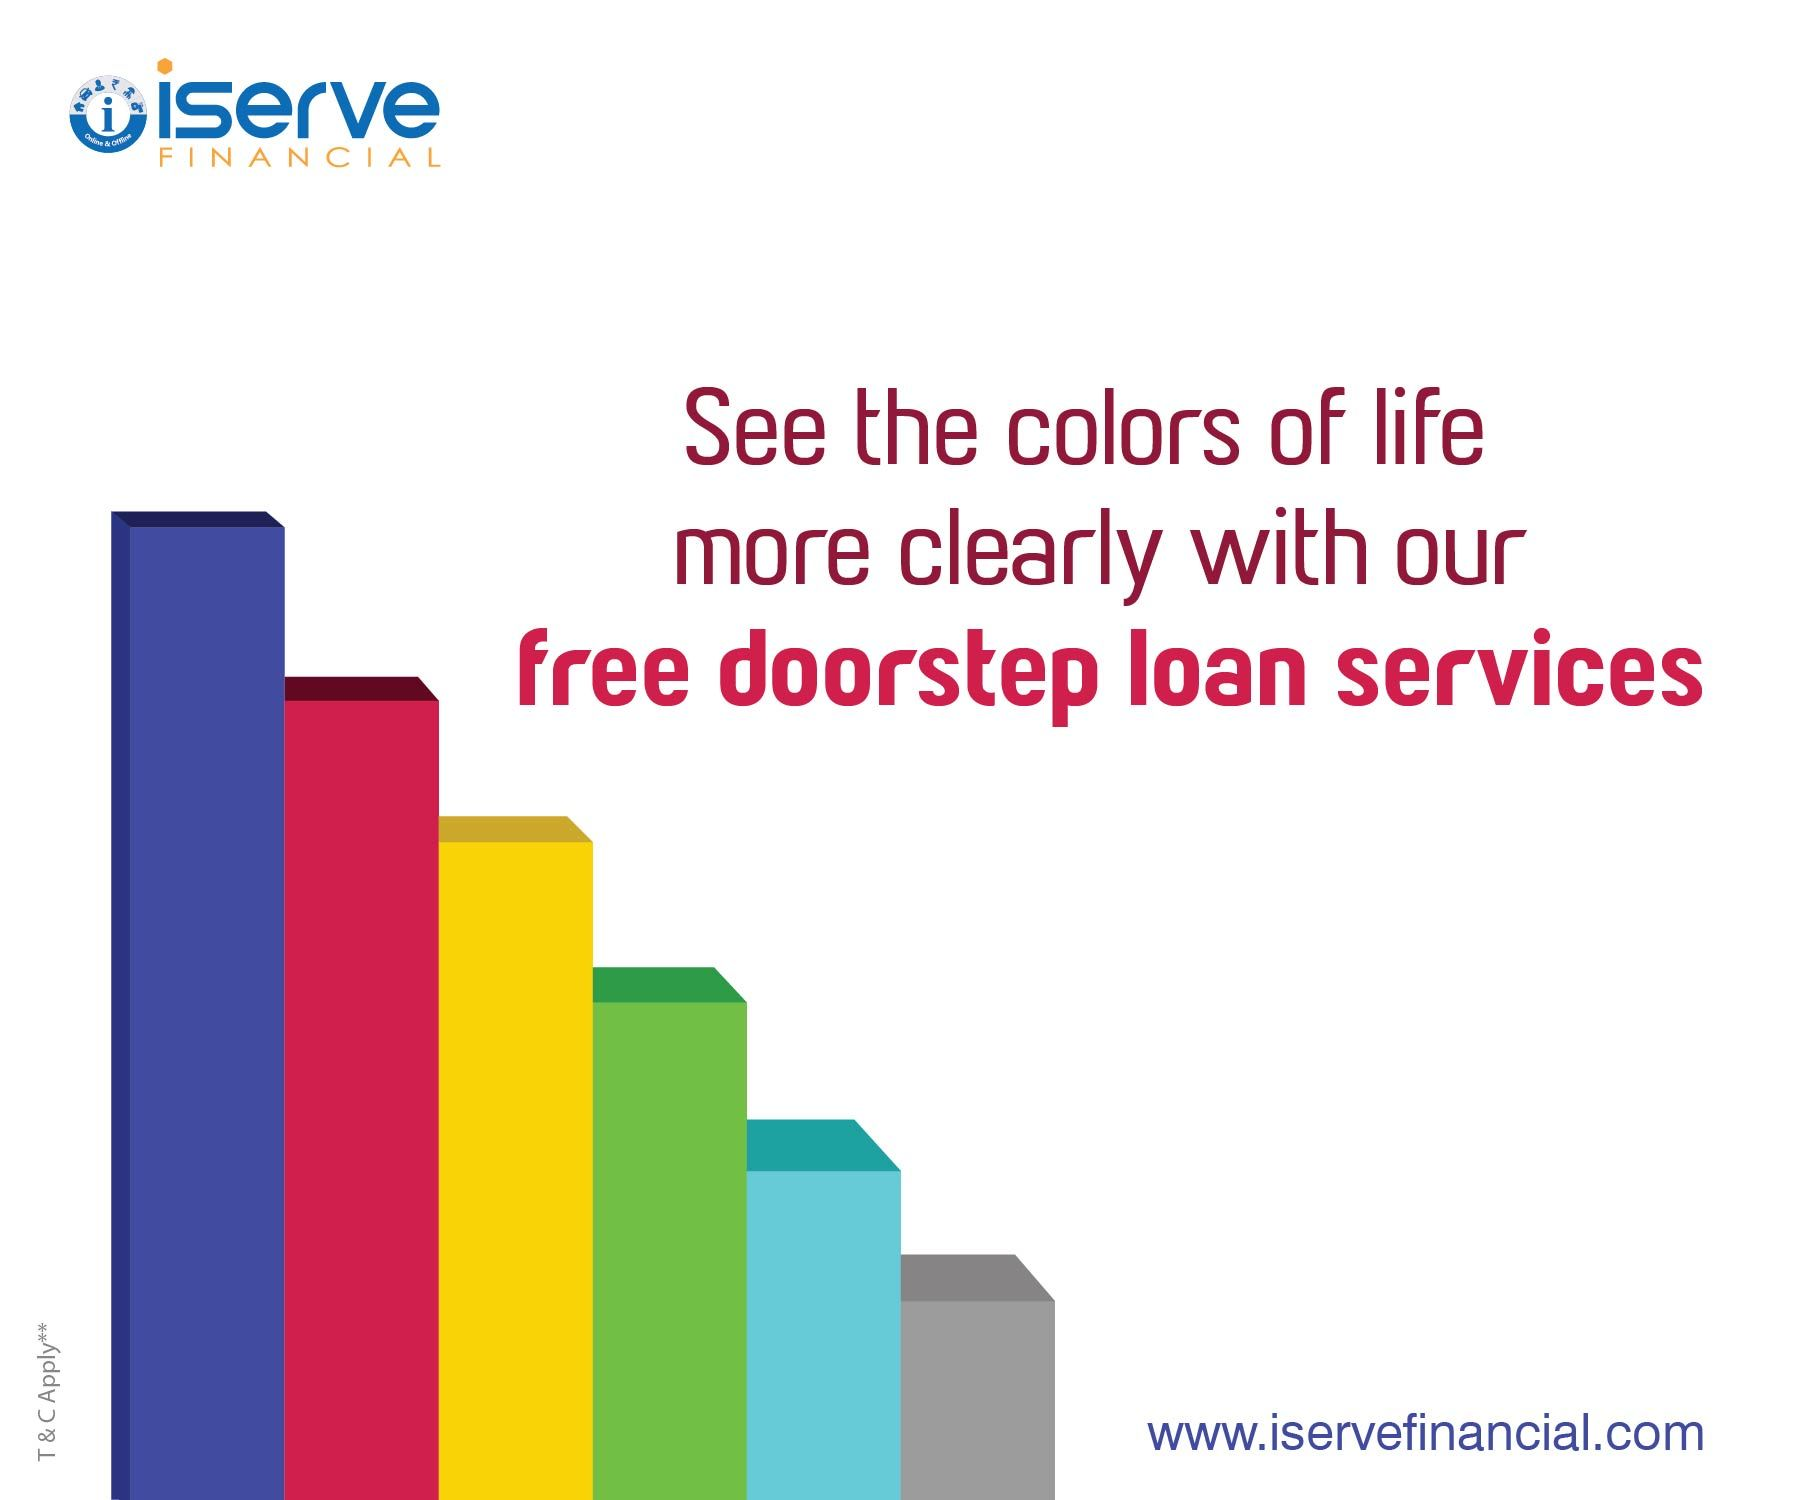 Seeing A Rainbow Of Colors Don T Worry It S Just Our Presence In Your Life Well That S How We Roll Come Join Us Personal Loans Finance Goals Home Loans